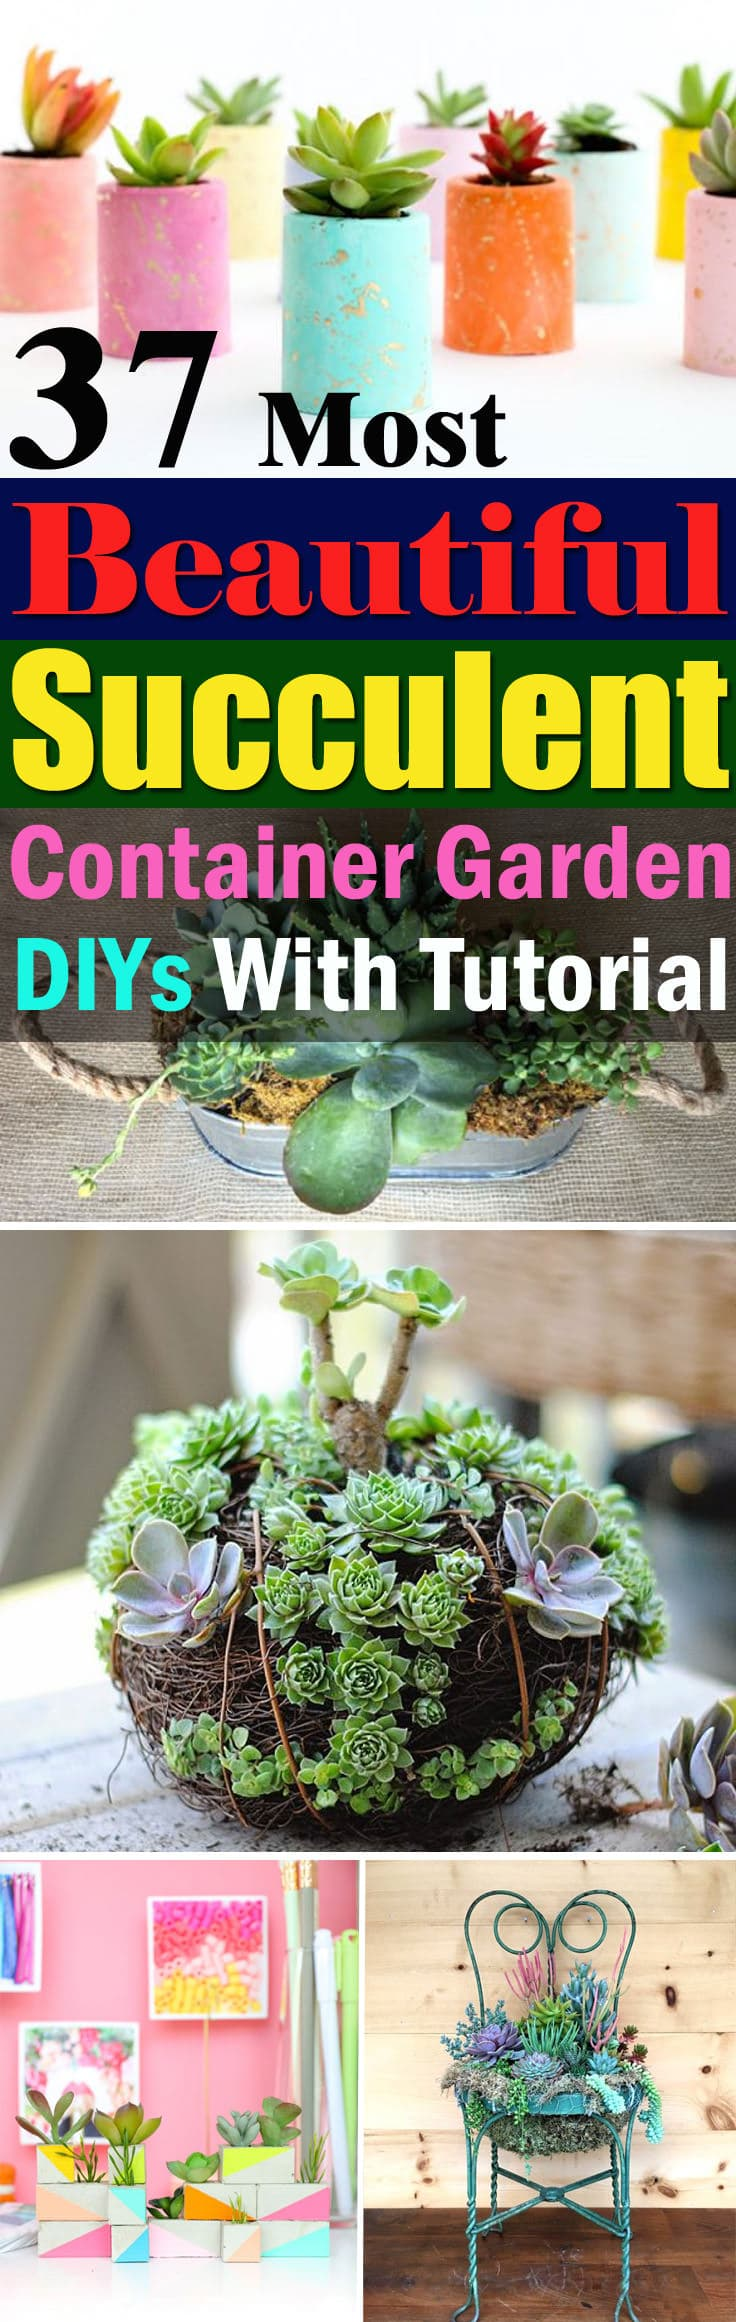 Be Creative With The Colorful Succulents When Arranging Them, Learn These  37 DIY Succulent Container